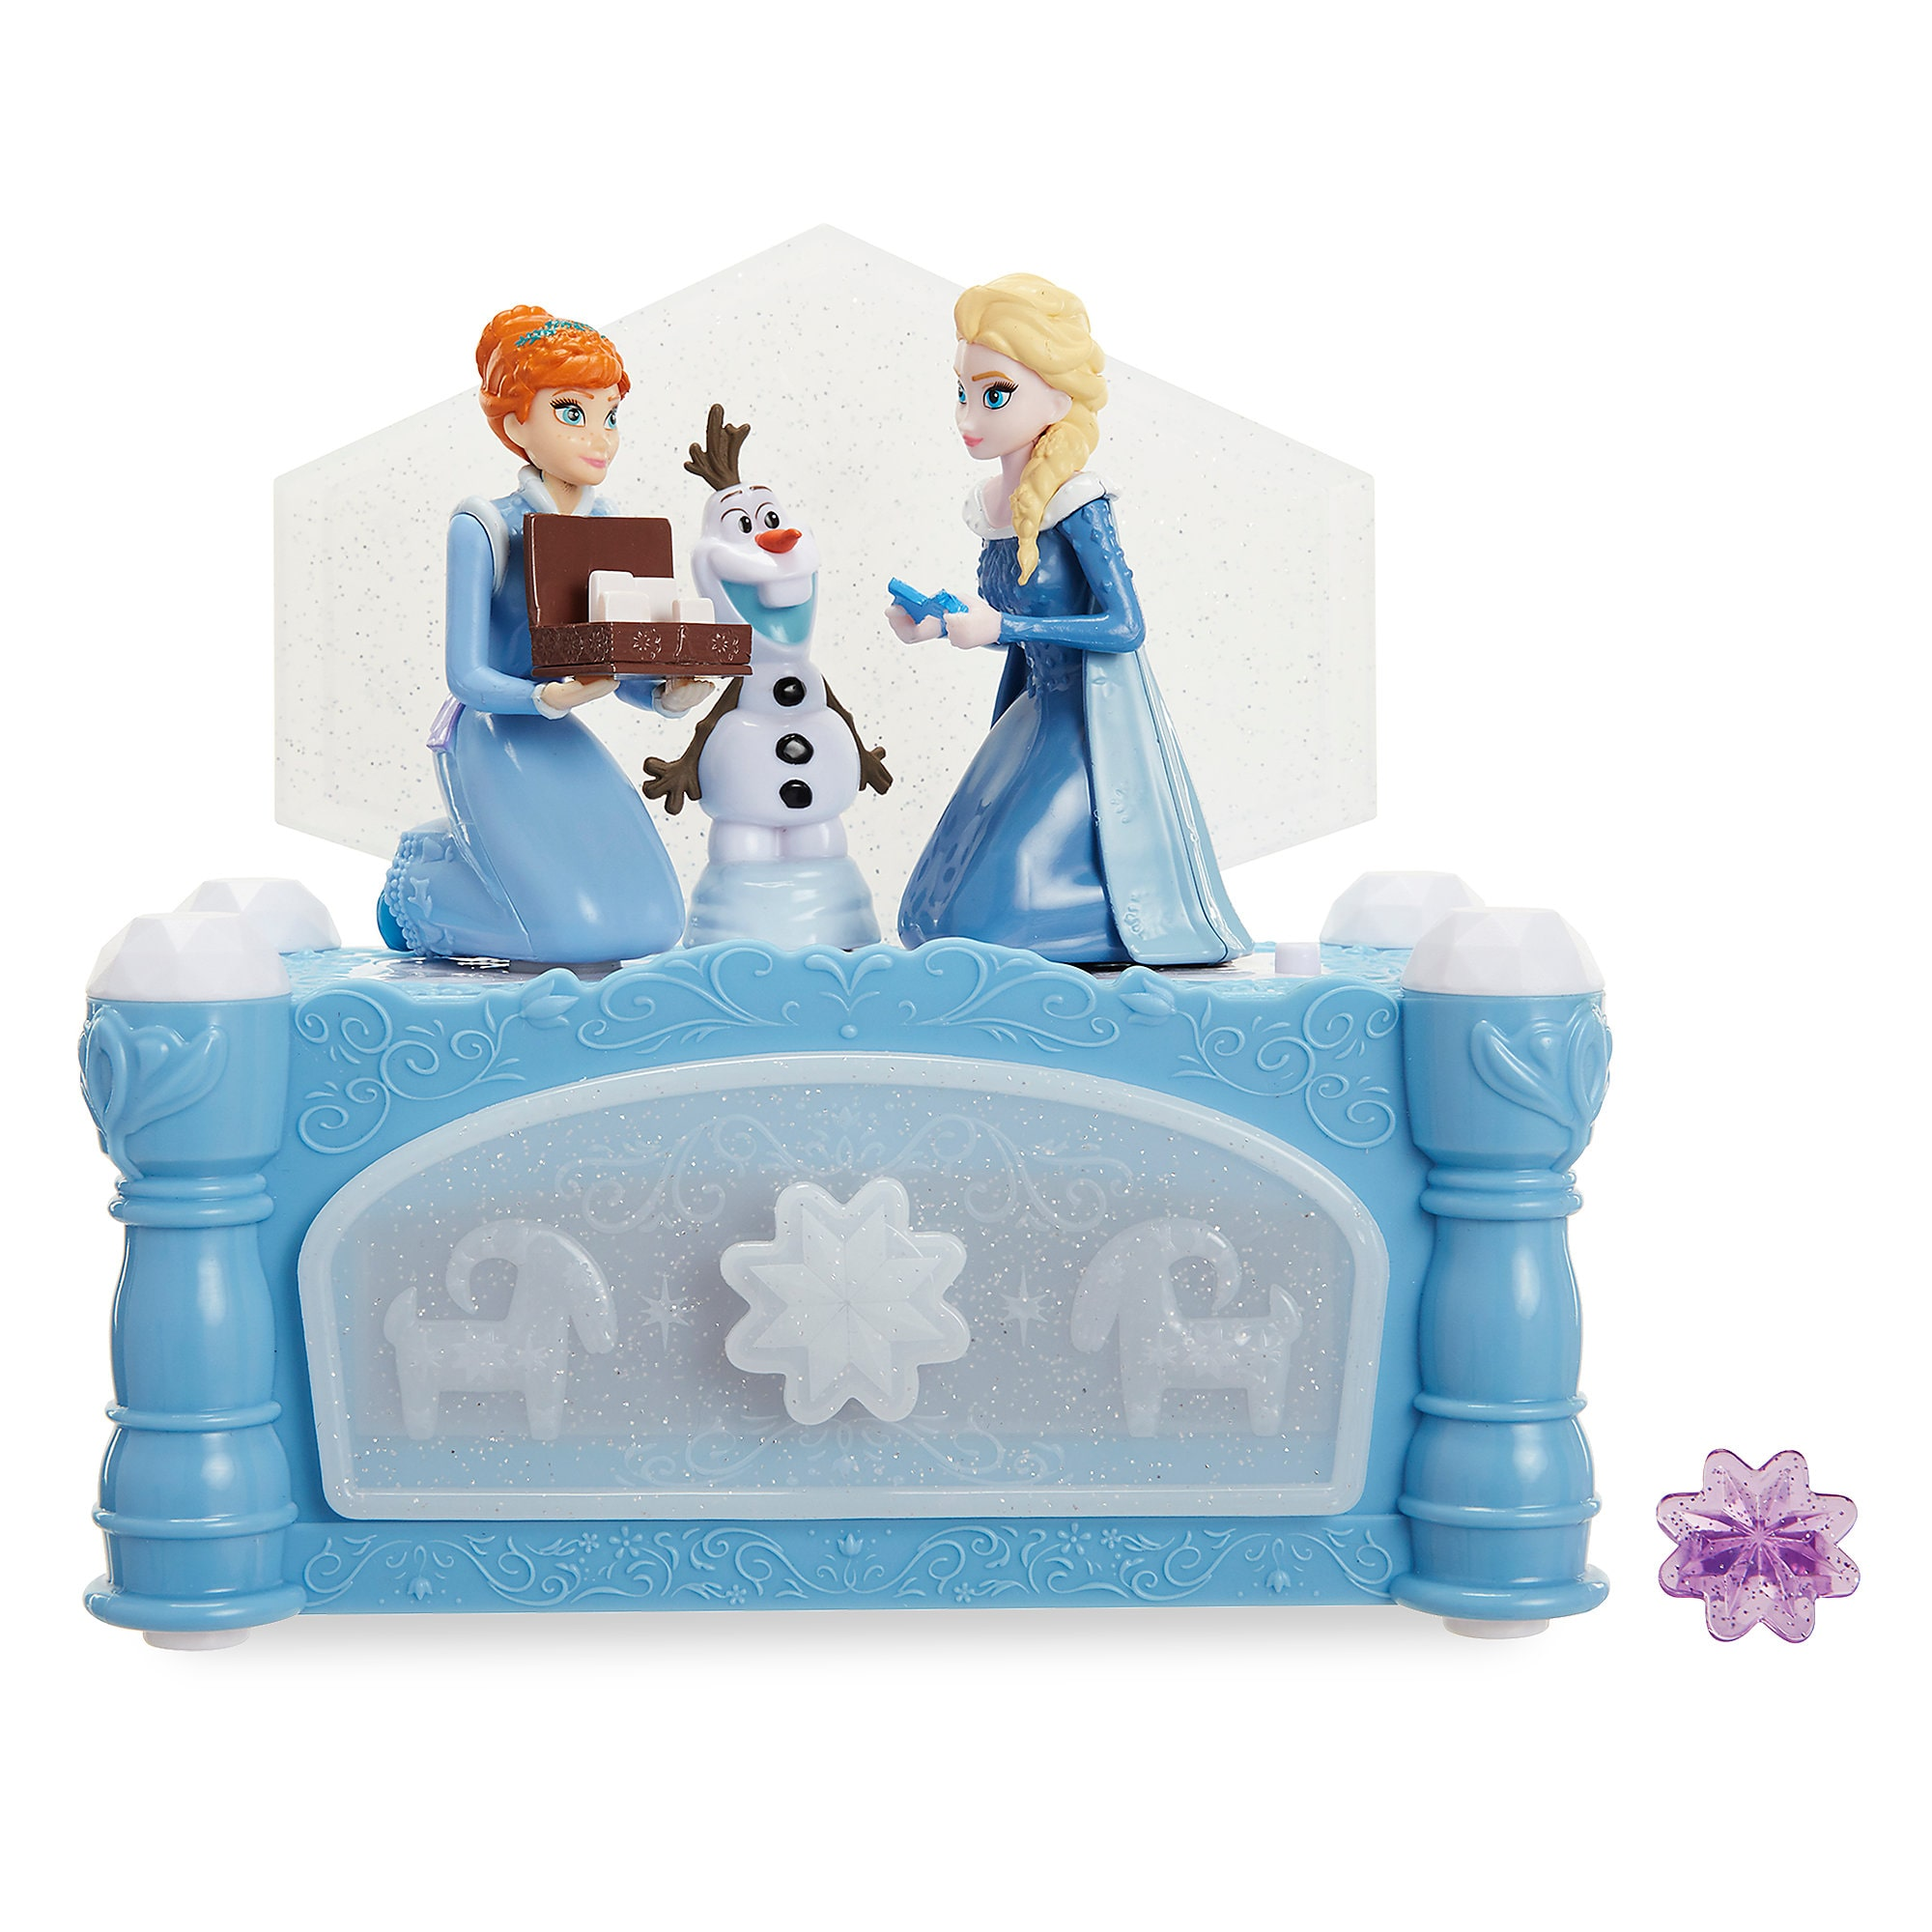 Olaf's Frozen Adventure Musical Jewelry Box